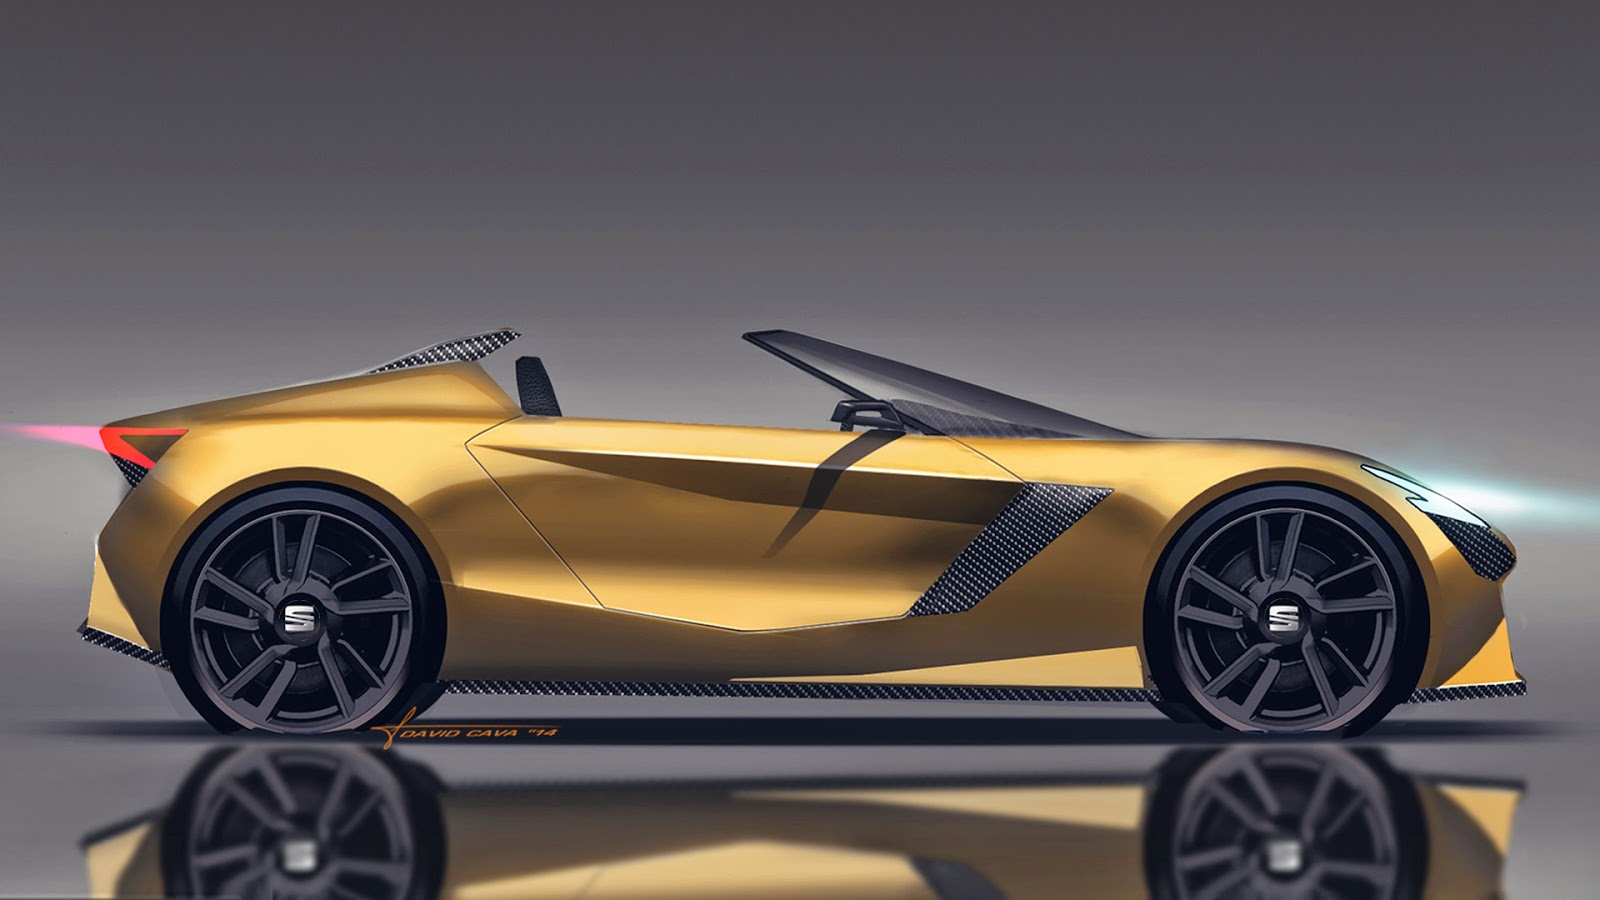 Seat Roadster Design Study for a Spanish Mazda MX-5